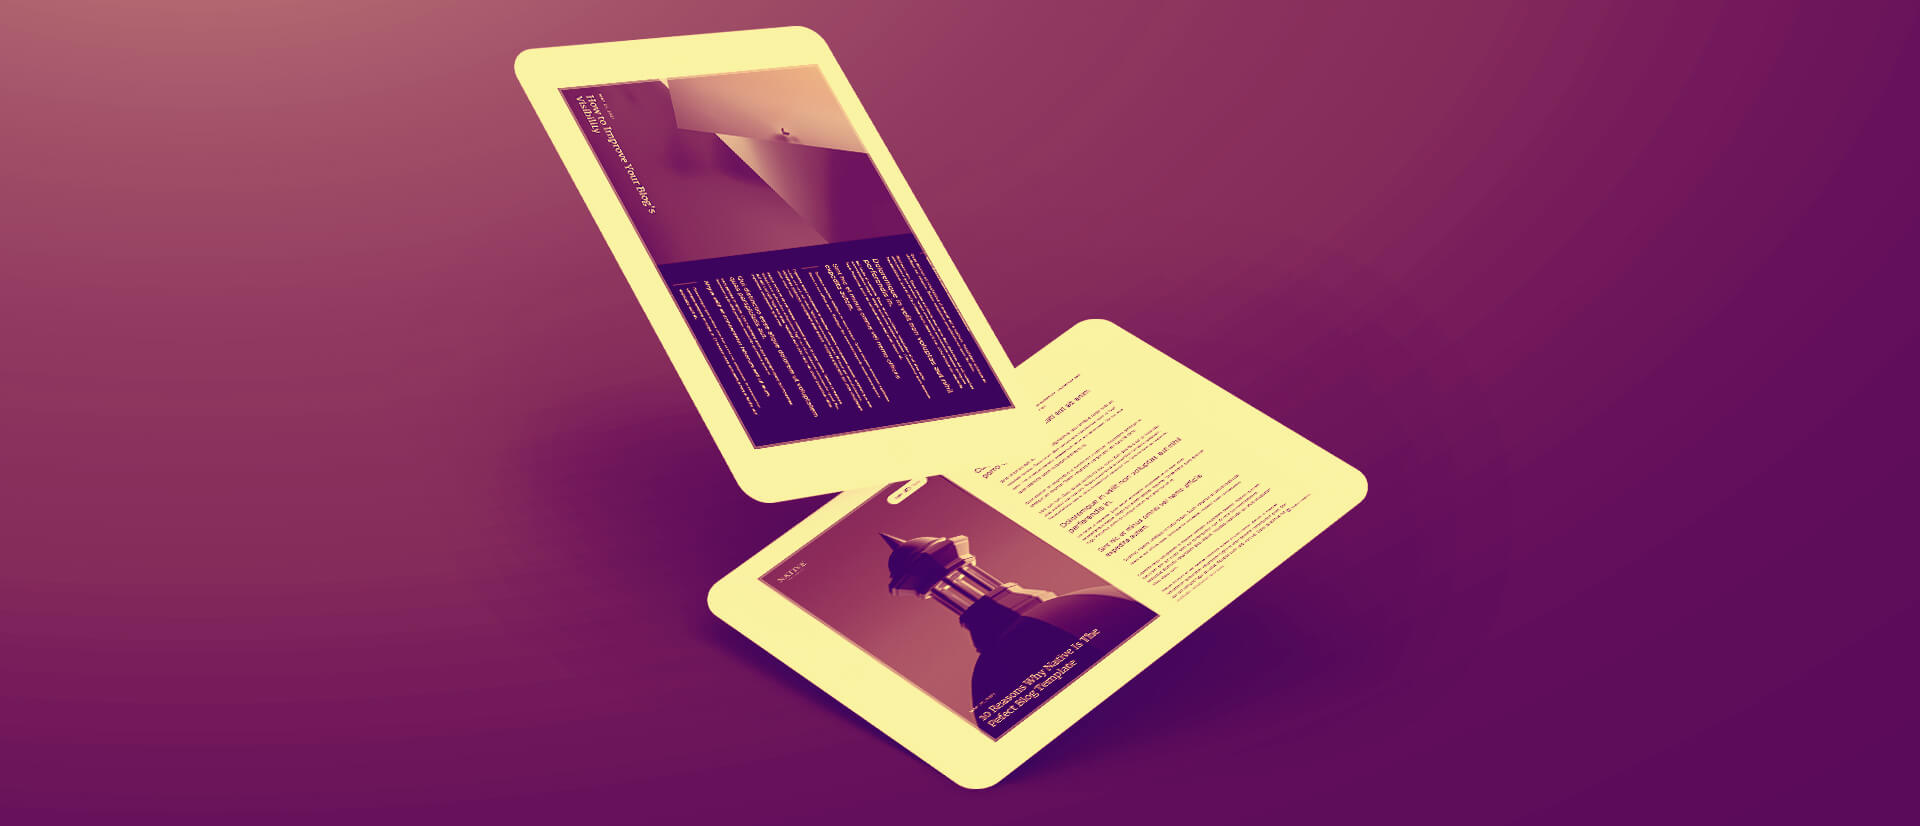 Two floating tablets with website screenshots of a blog website.